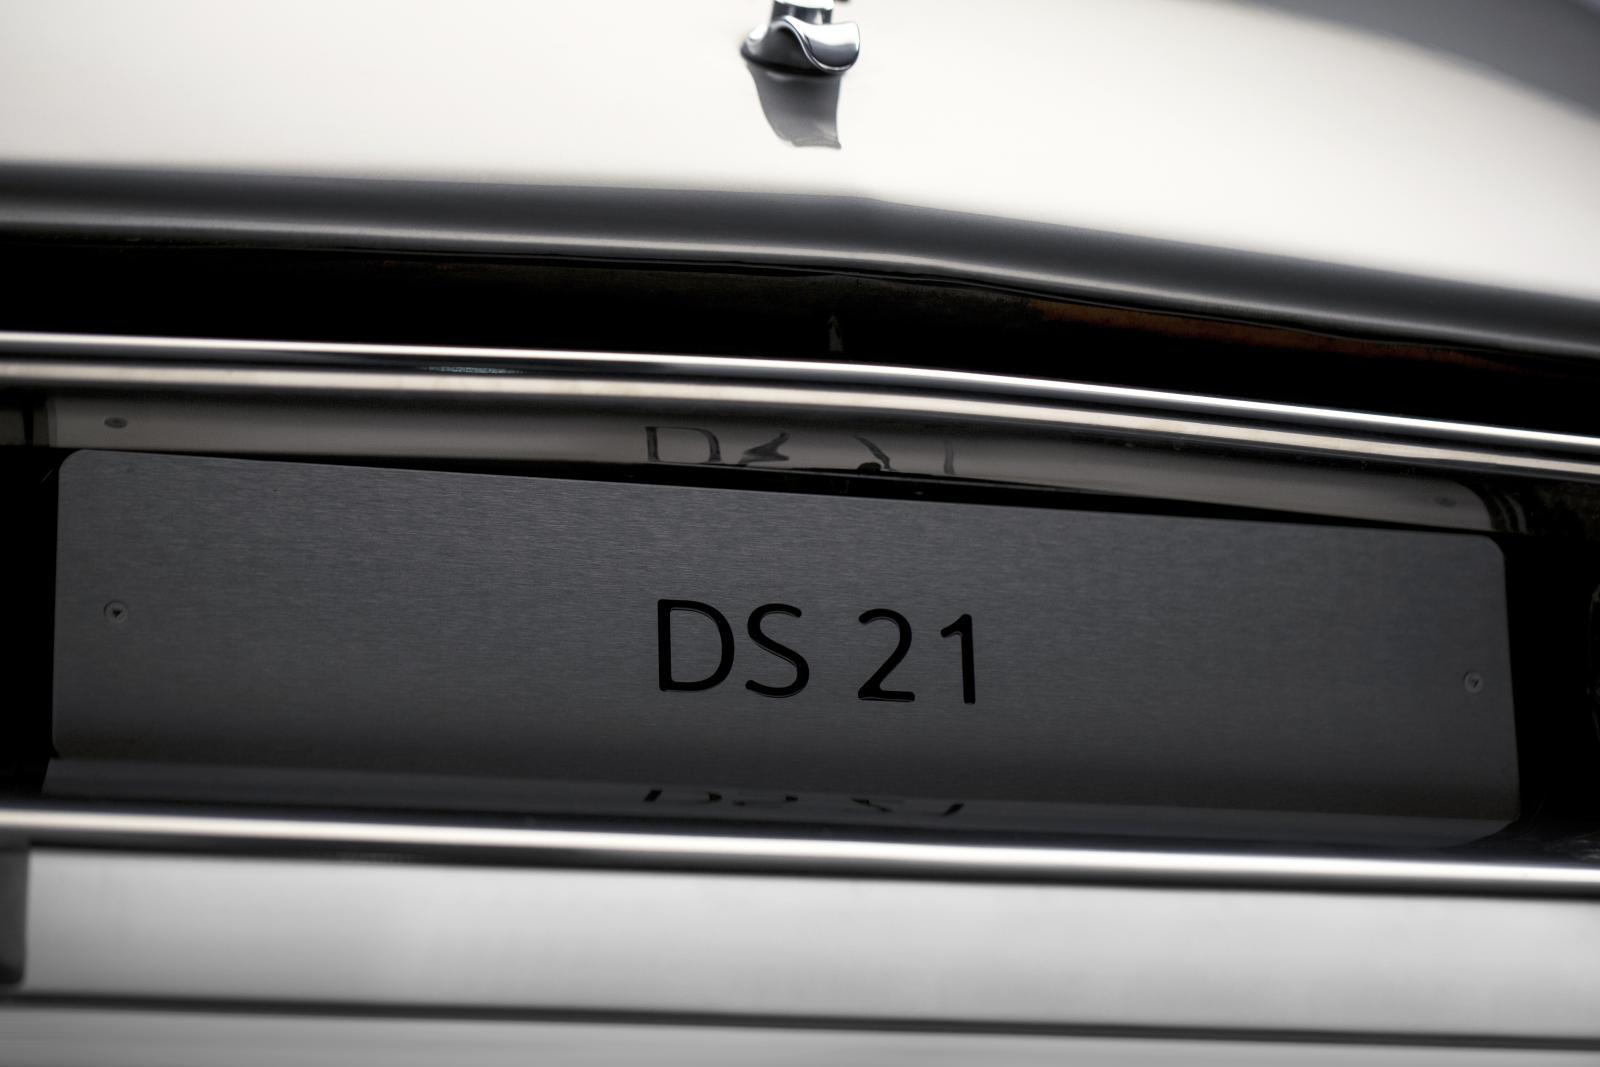 DS 21-Plate